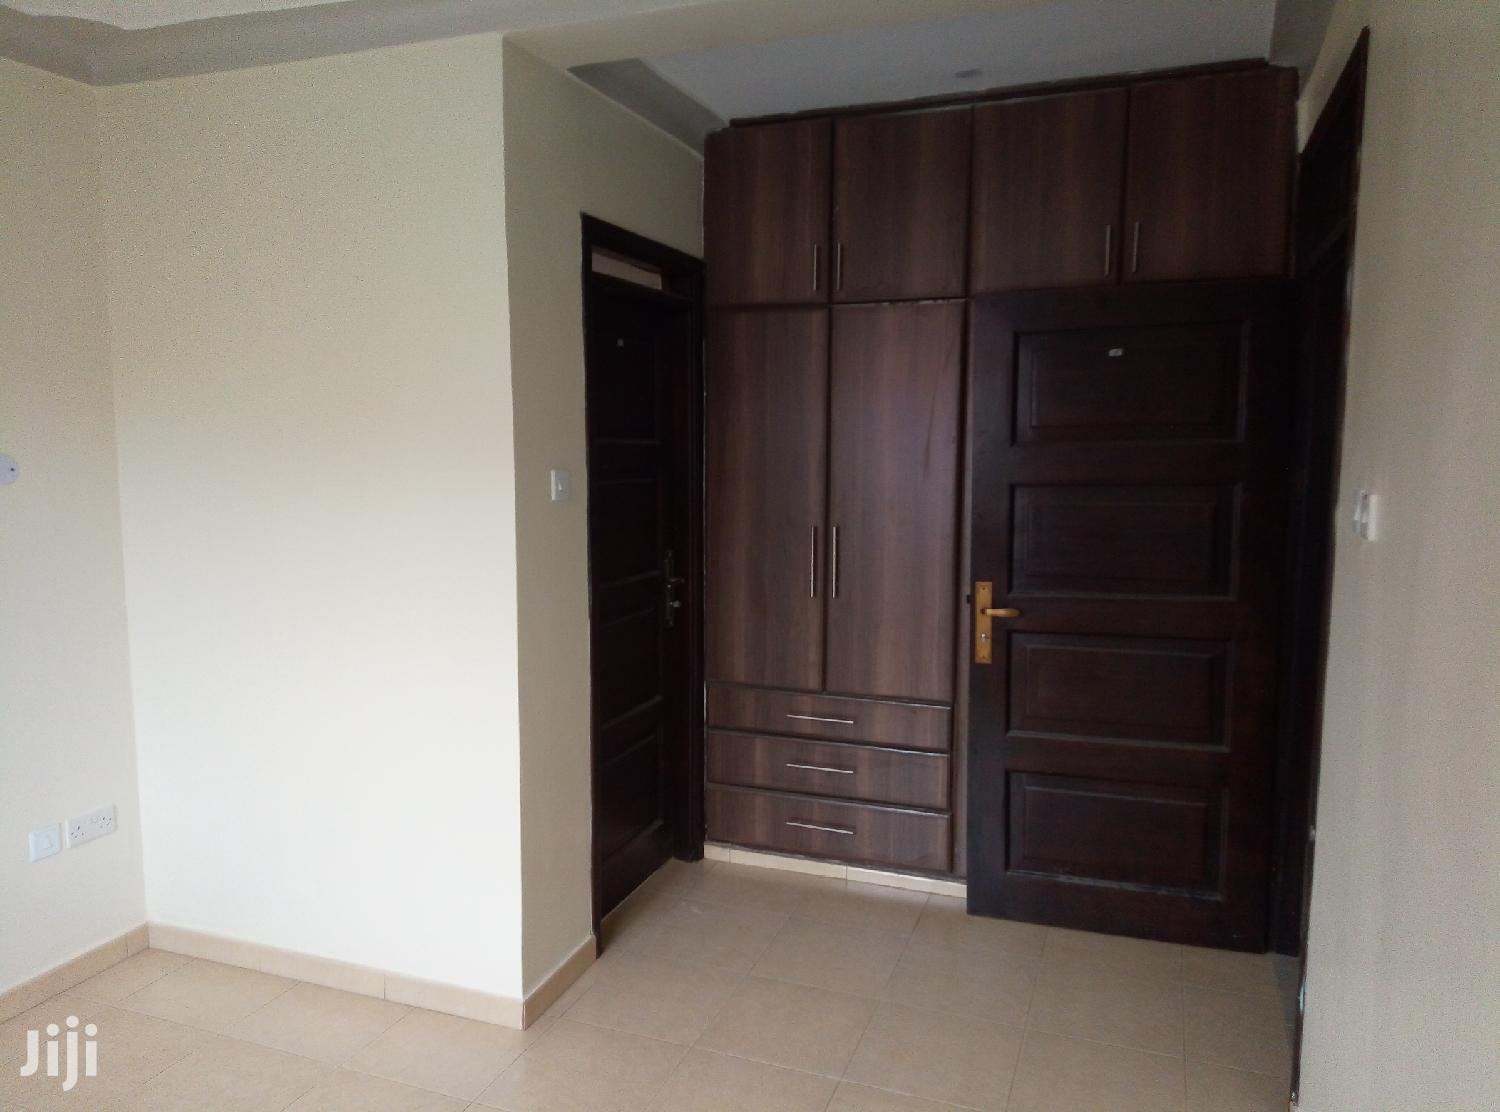 Six Bedroom House In Kira For Rent | Houses & Apartments For Rent for sale in Kampala, Uganda